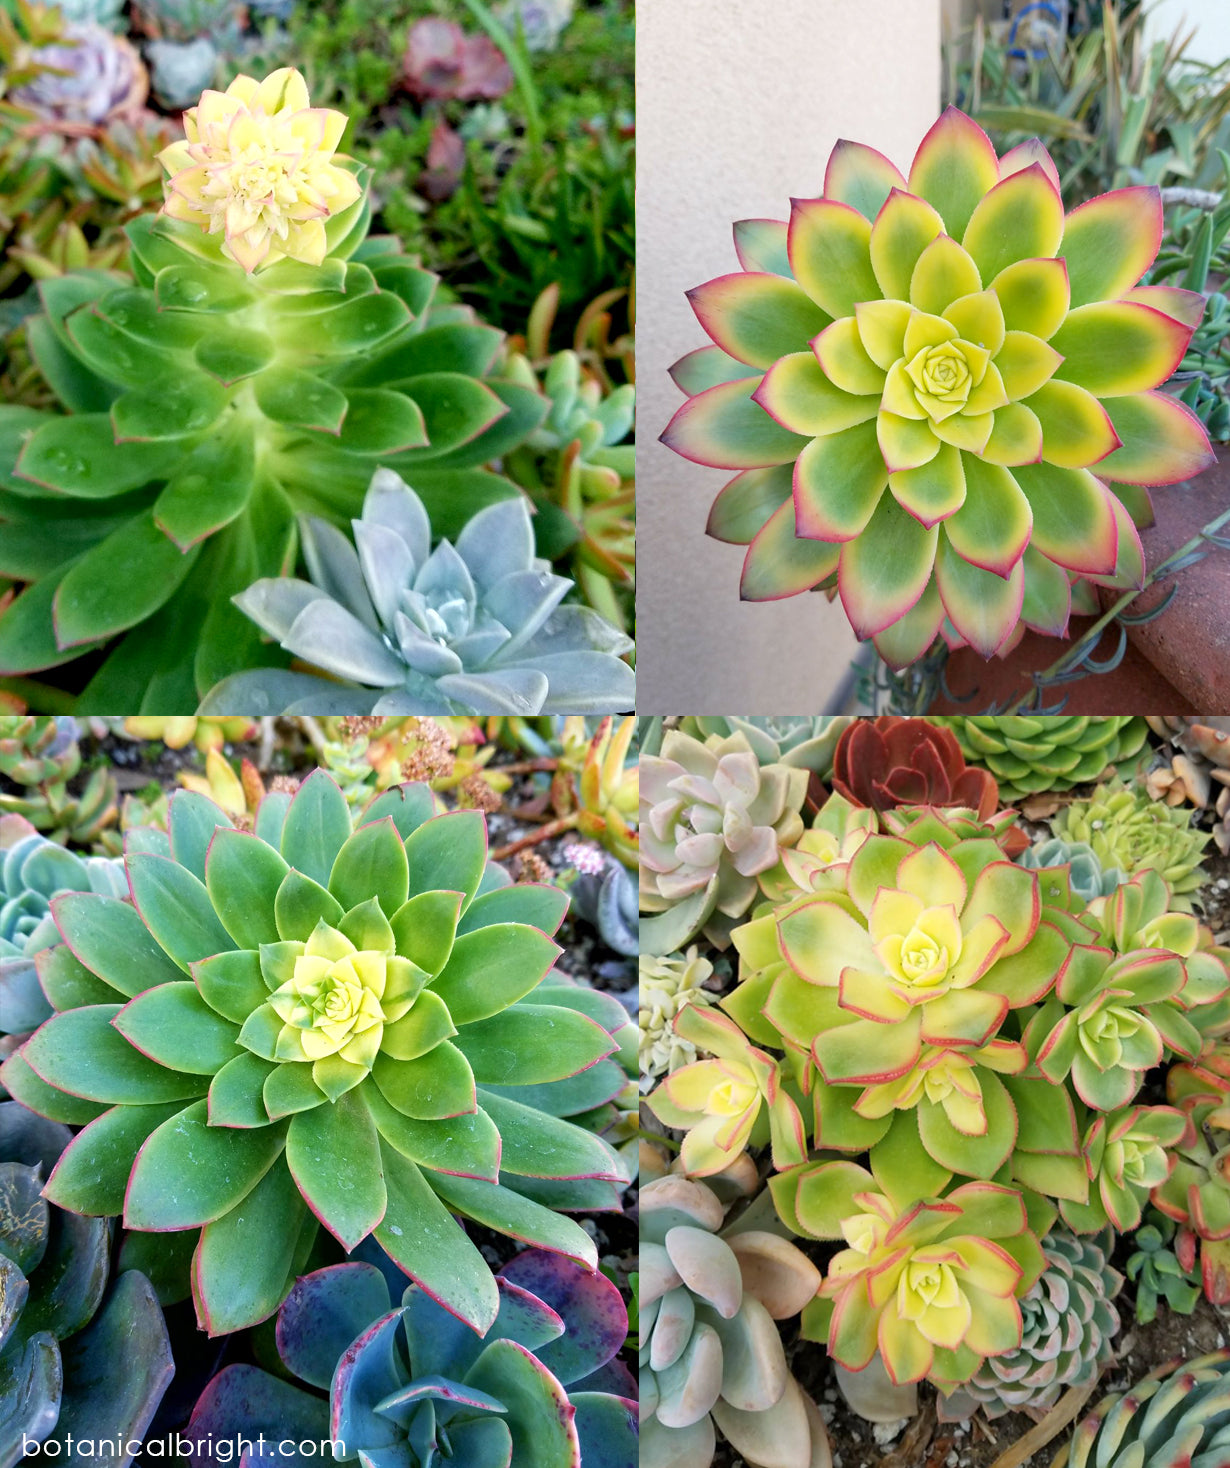 Plant of the Week - Aeonium Kiwi - Botanical Bright